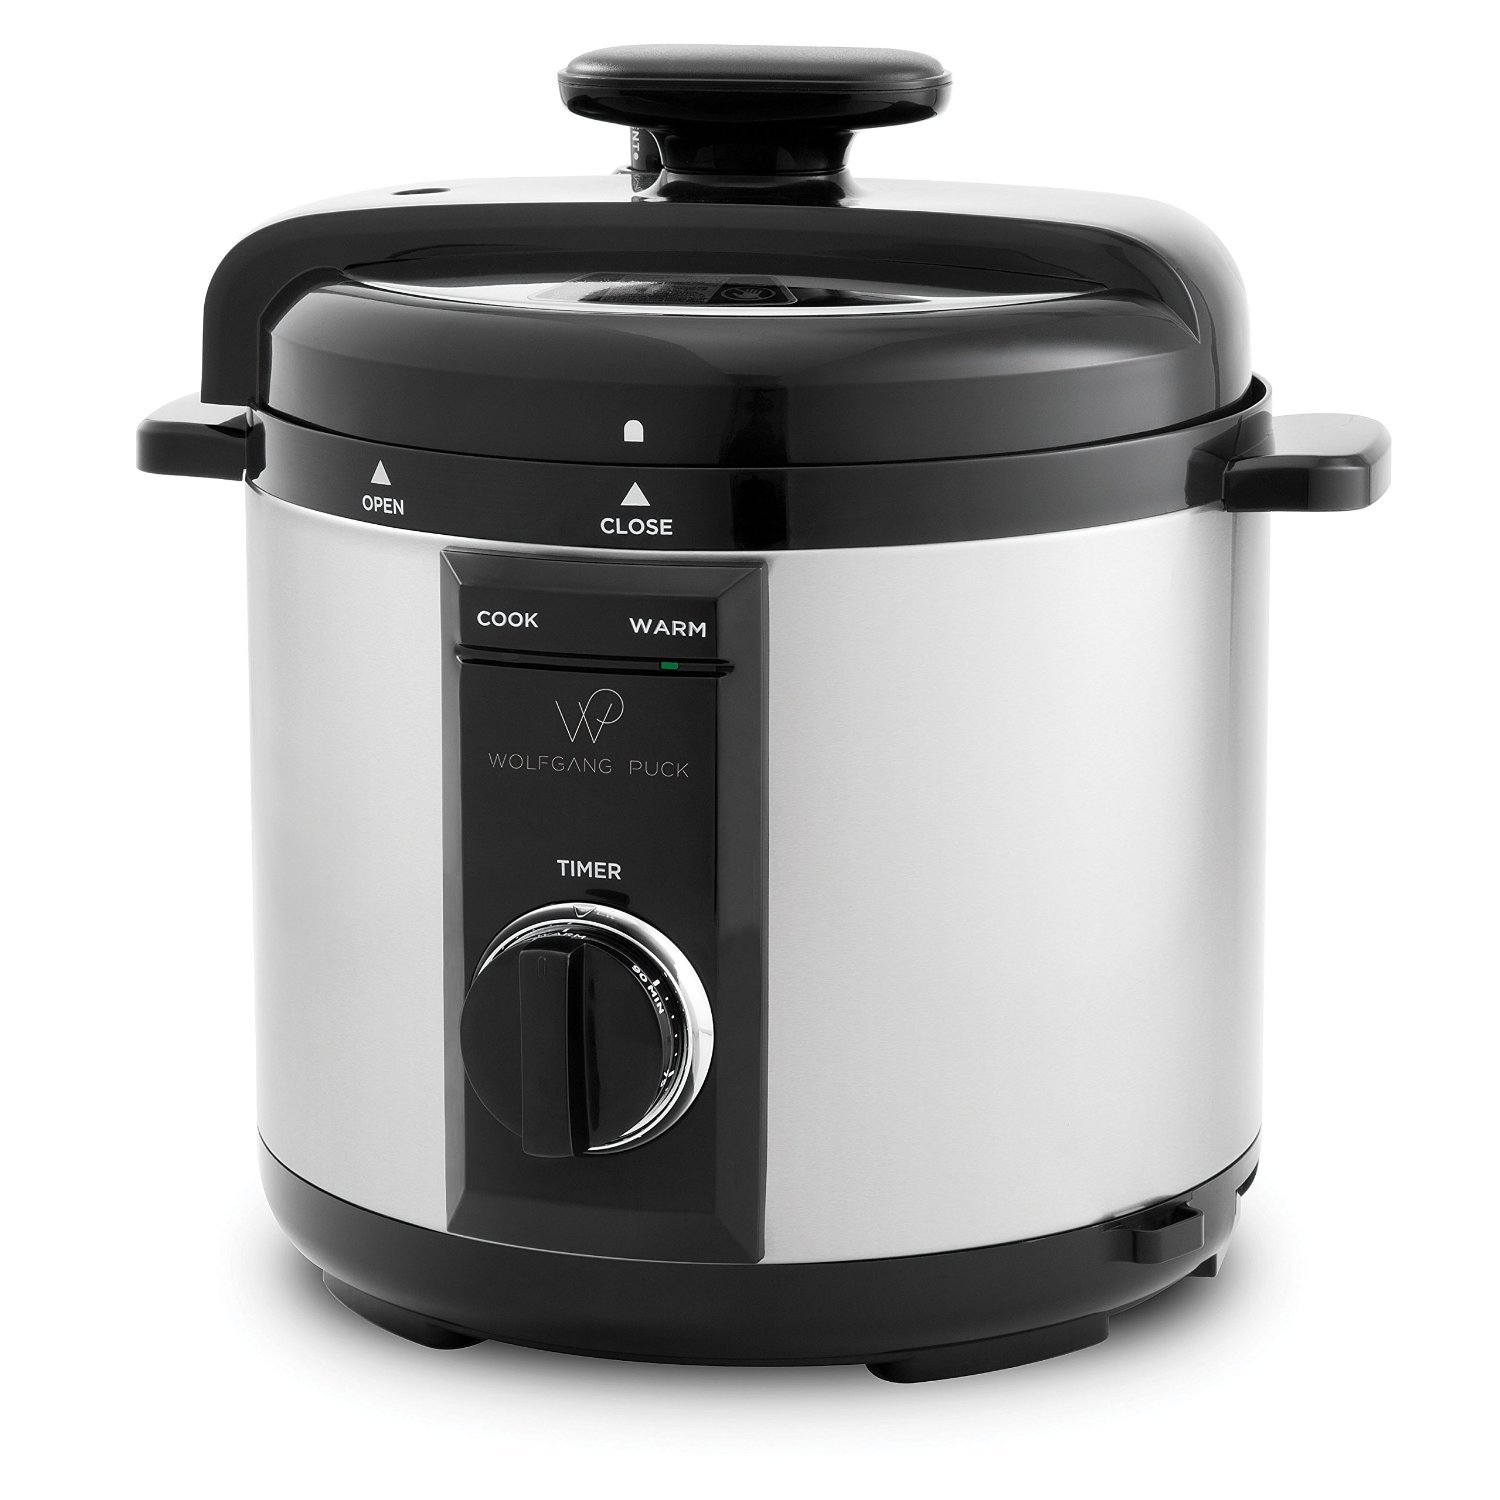 Wolfgang Puck Automatic Pressure Cooker with Removable 8 Quart Pot, 1200-Watt Cook and Sear by Wolfgang Puck (Image #1)